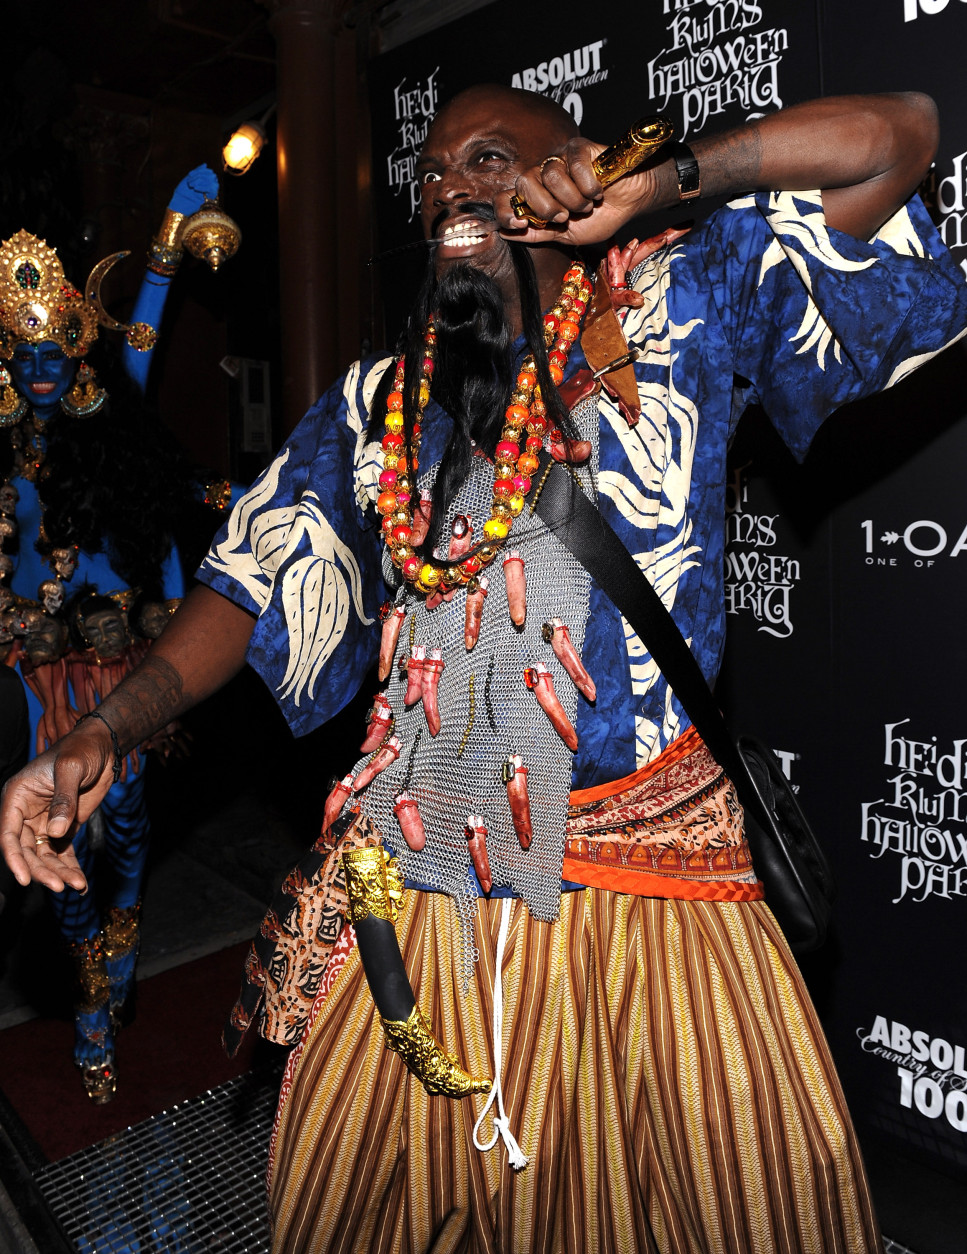 Singer Seal attends Heidi Klum's annual Halloween party at 1Oak on Friday, Oct. 31, 2008 in New York. (AP Photo/Evan Agostini)